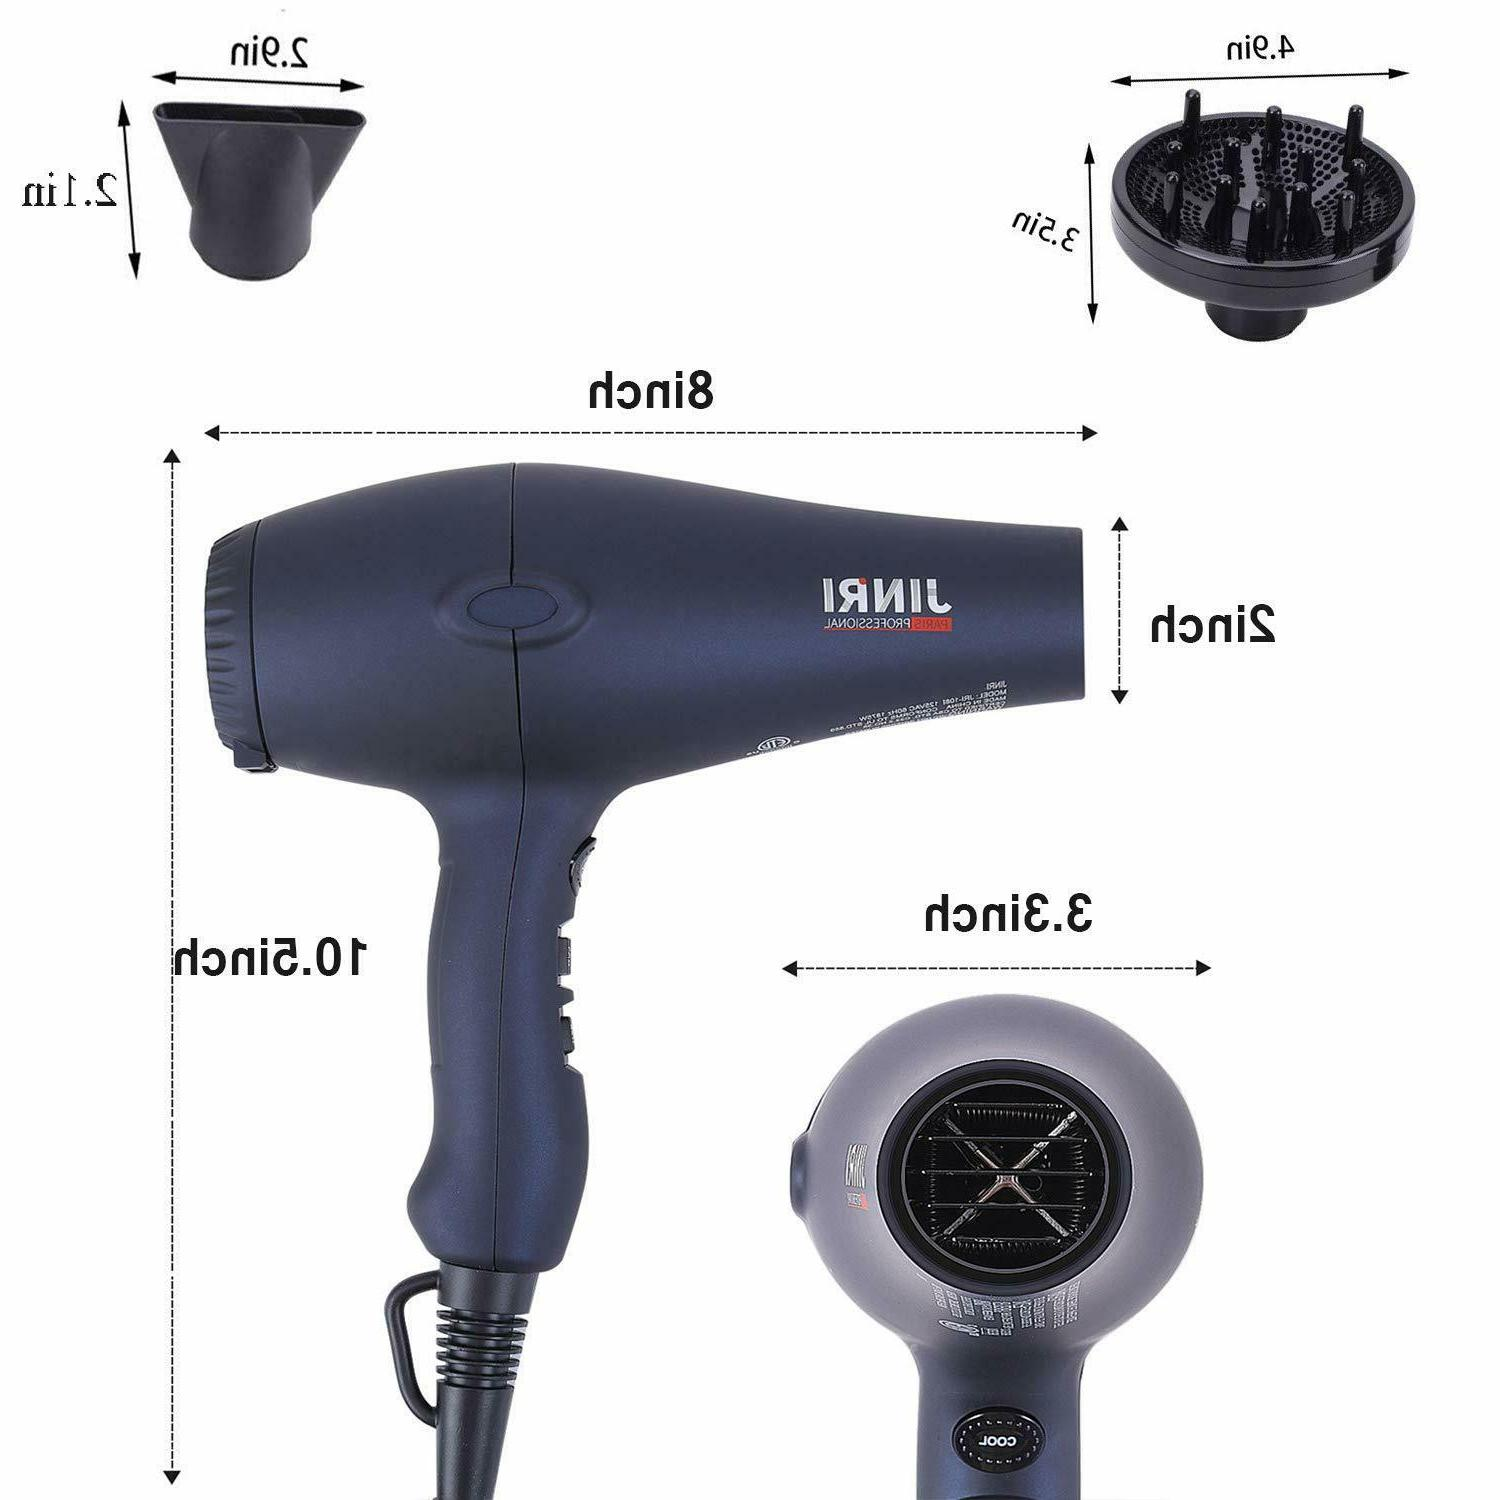 1875w Dryer Ion Salon